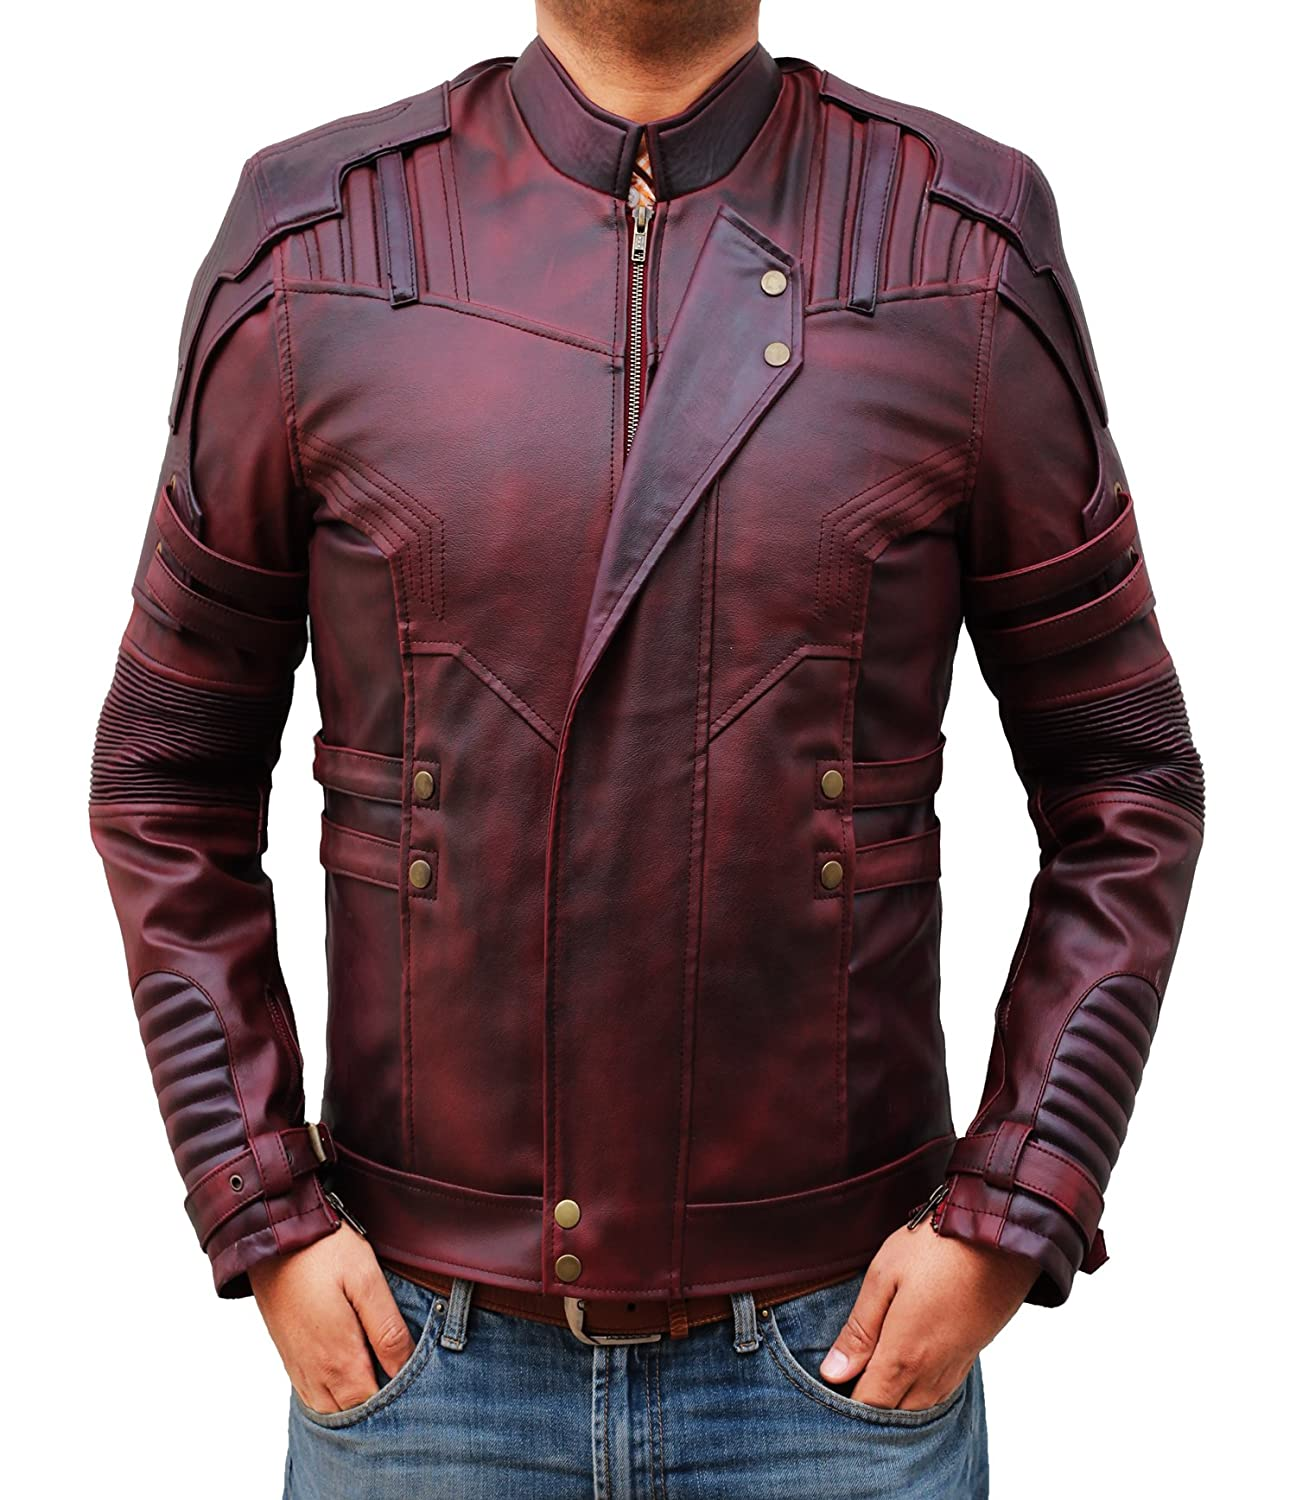 decrum Star Lord Guardians of the Galaxy 2 Waxedレザージャケット B01BNLMS2C XS|Maroon - Star Lord Jacket Maroon - Star Lord Jacket XS